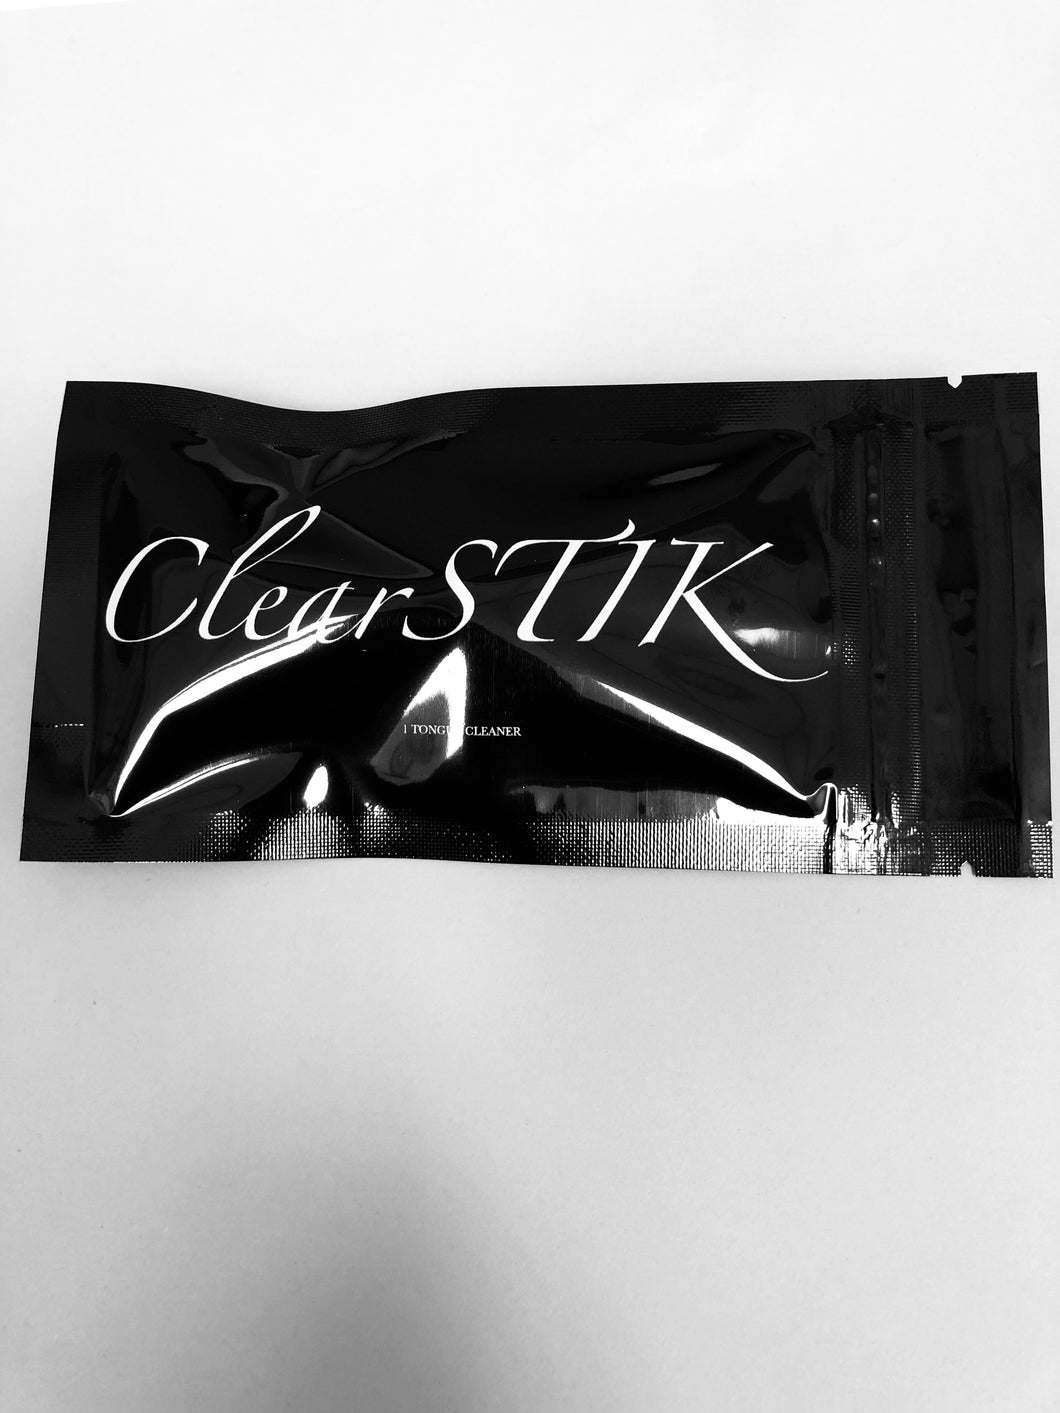 ClearSTIK (1  tongue cleaner)